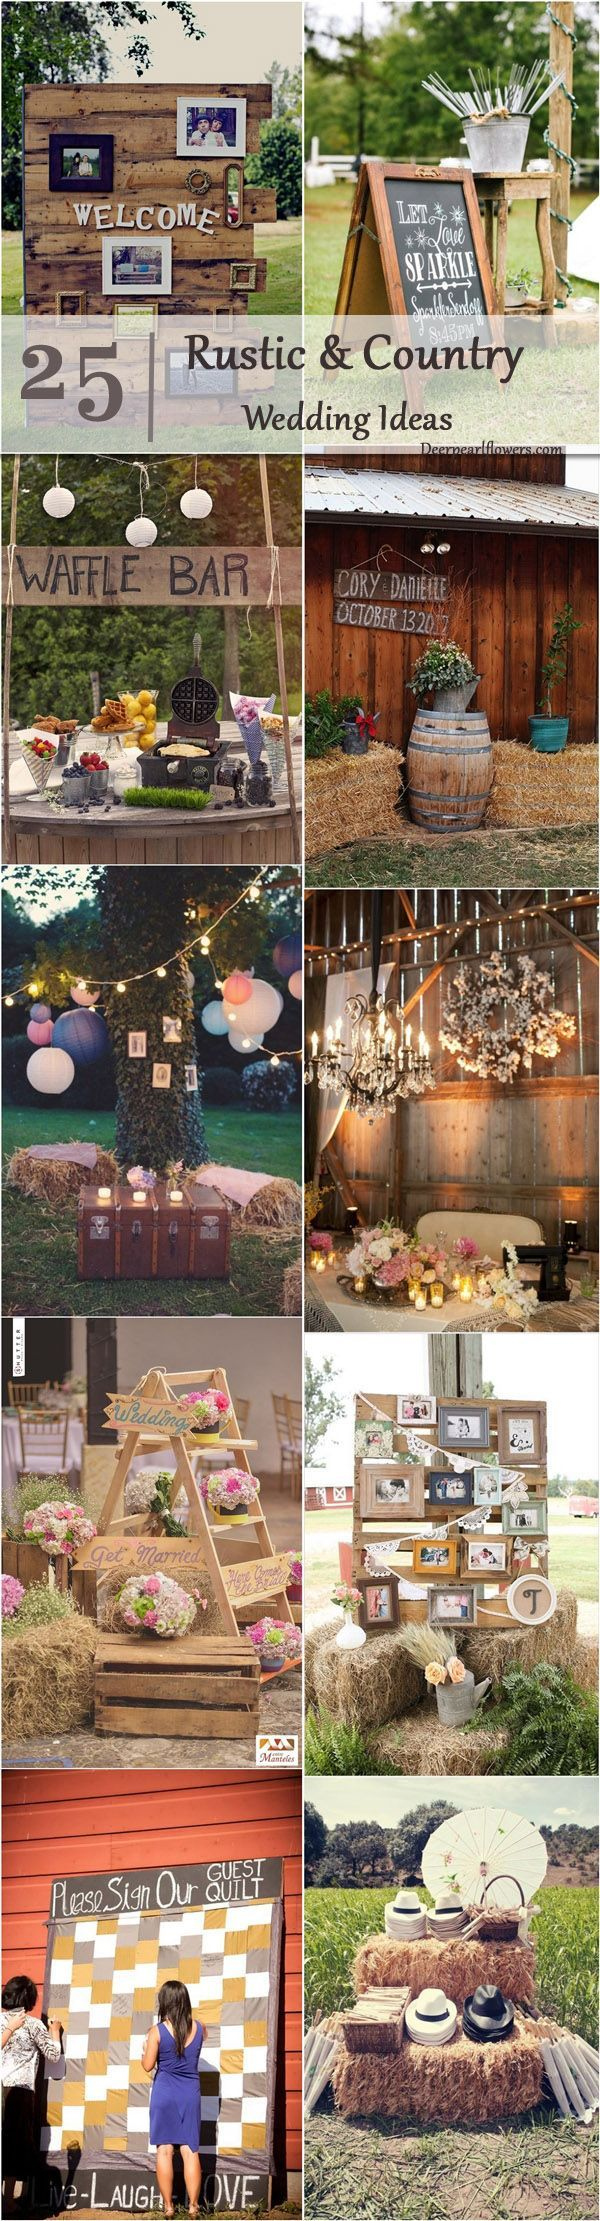 Country wedding decoration ideas   Gorgeous Country Rustic Wedding Ideas for your Big Day  Rustic